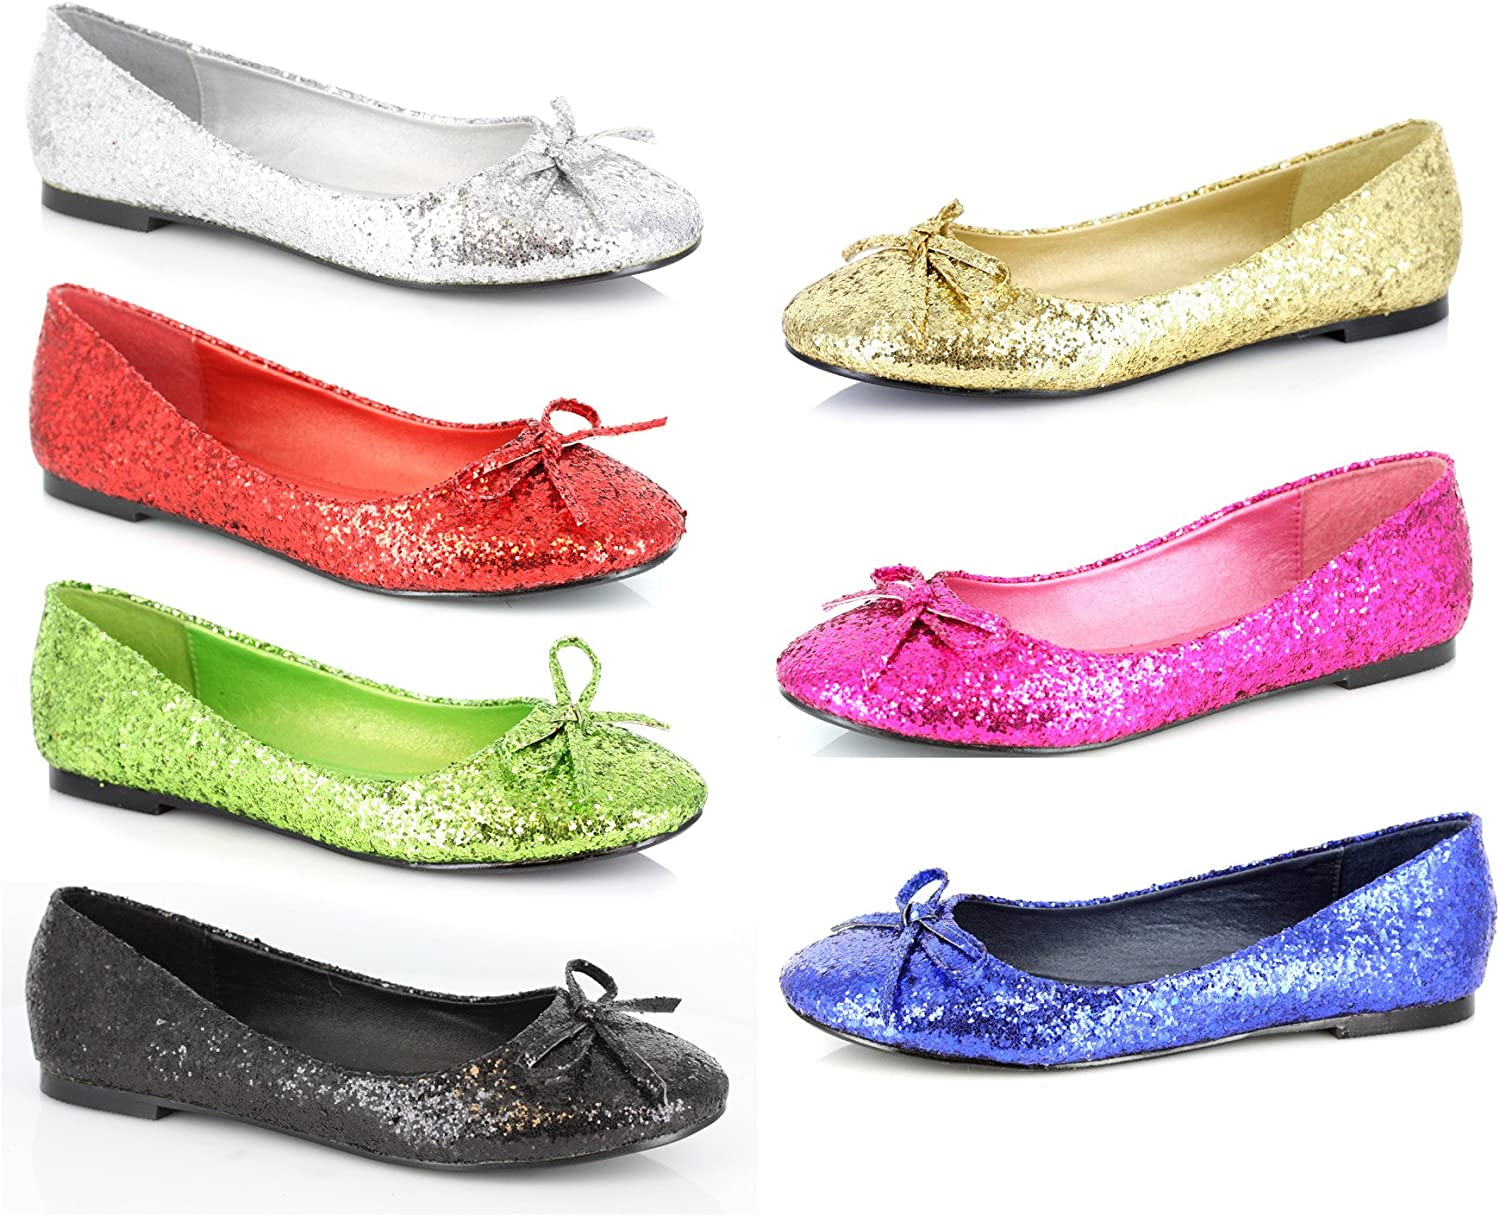 Ellie shoes 016-MILA-G REDG Womens, Adult Glitter Flat with Bow